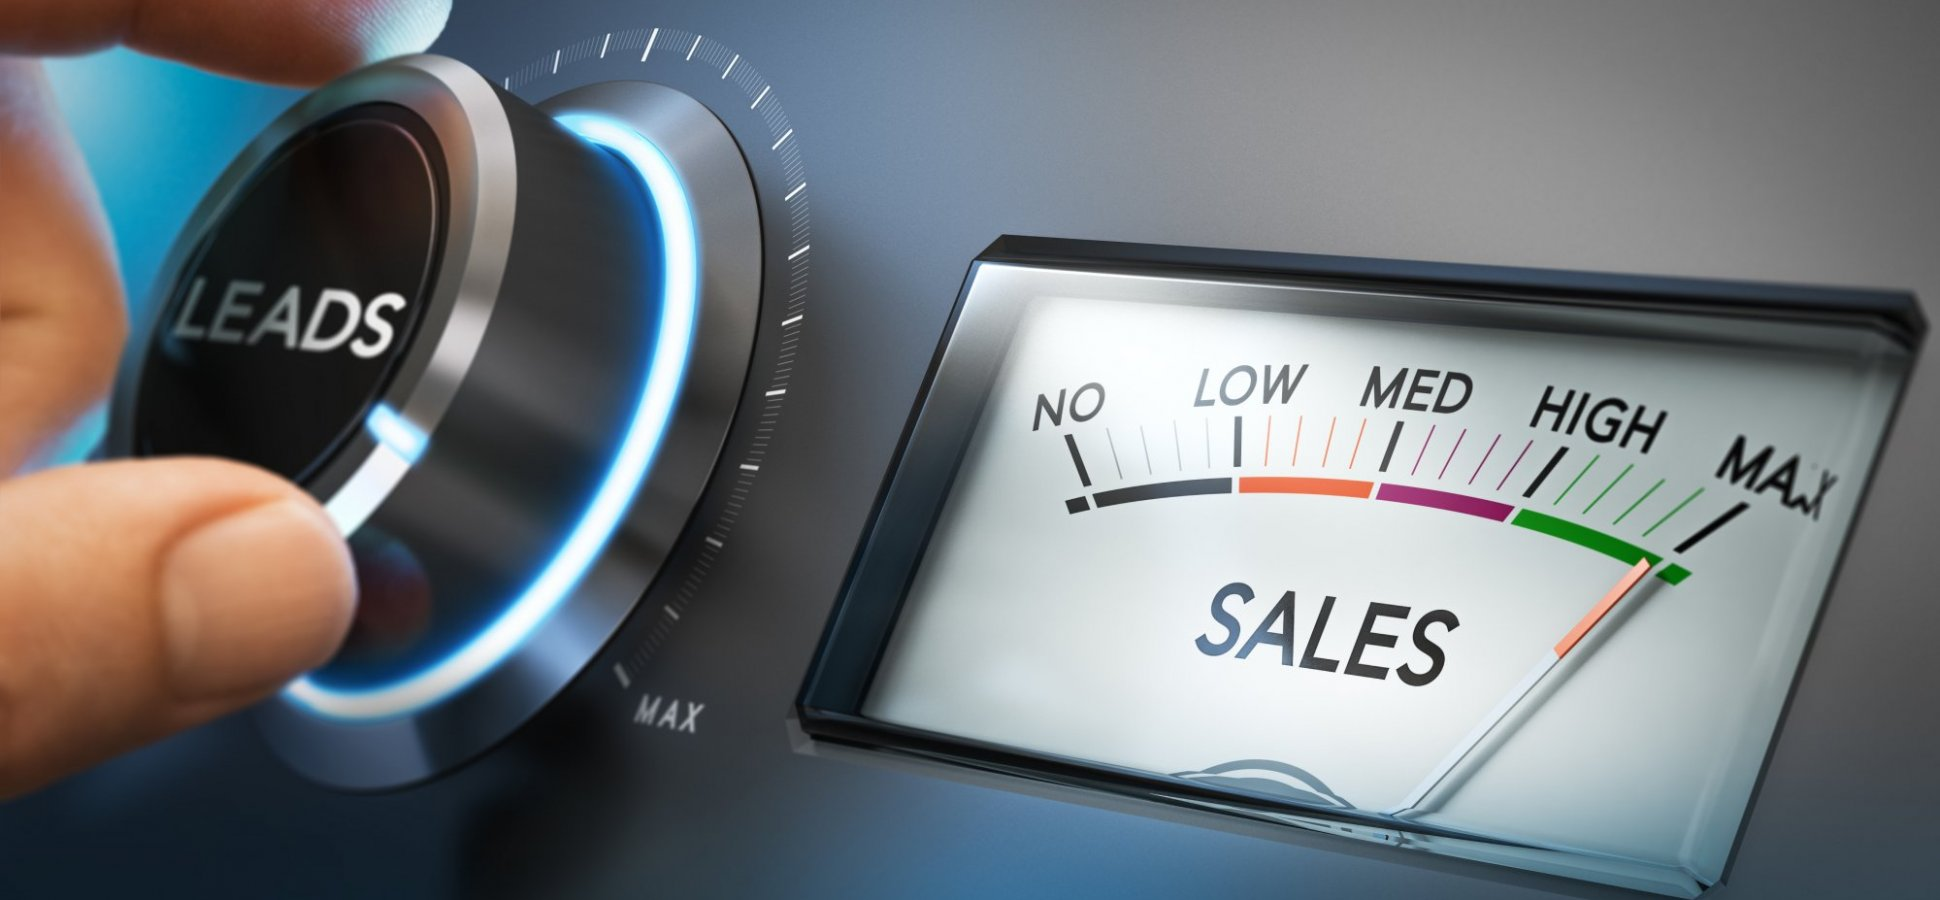 2 Key Habits of Successful Sales Organizations Revealed in New Research